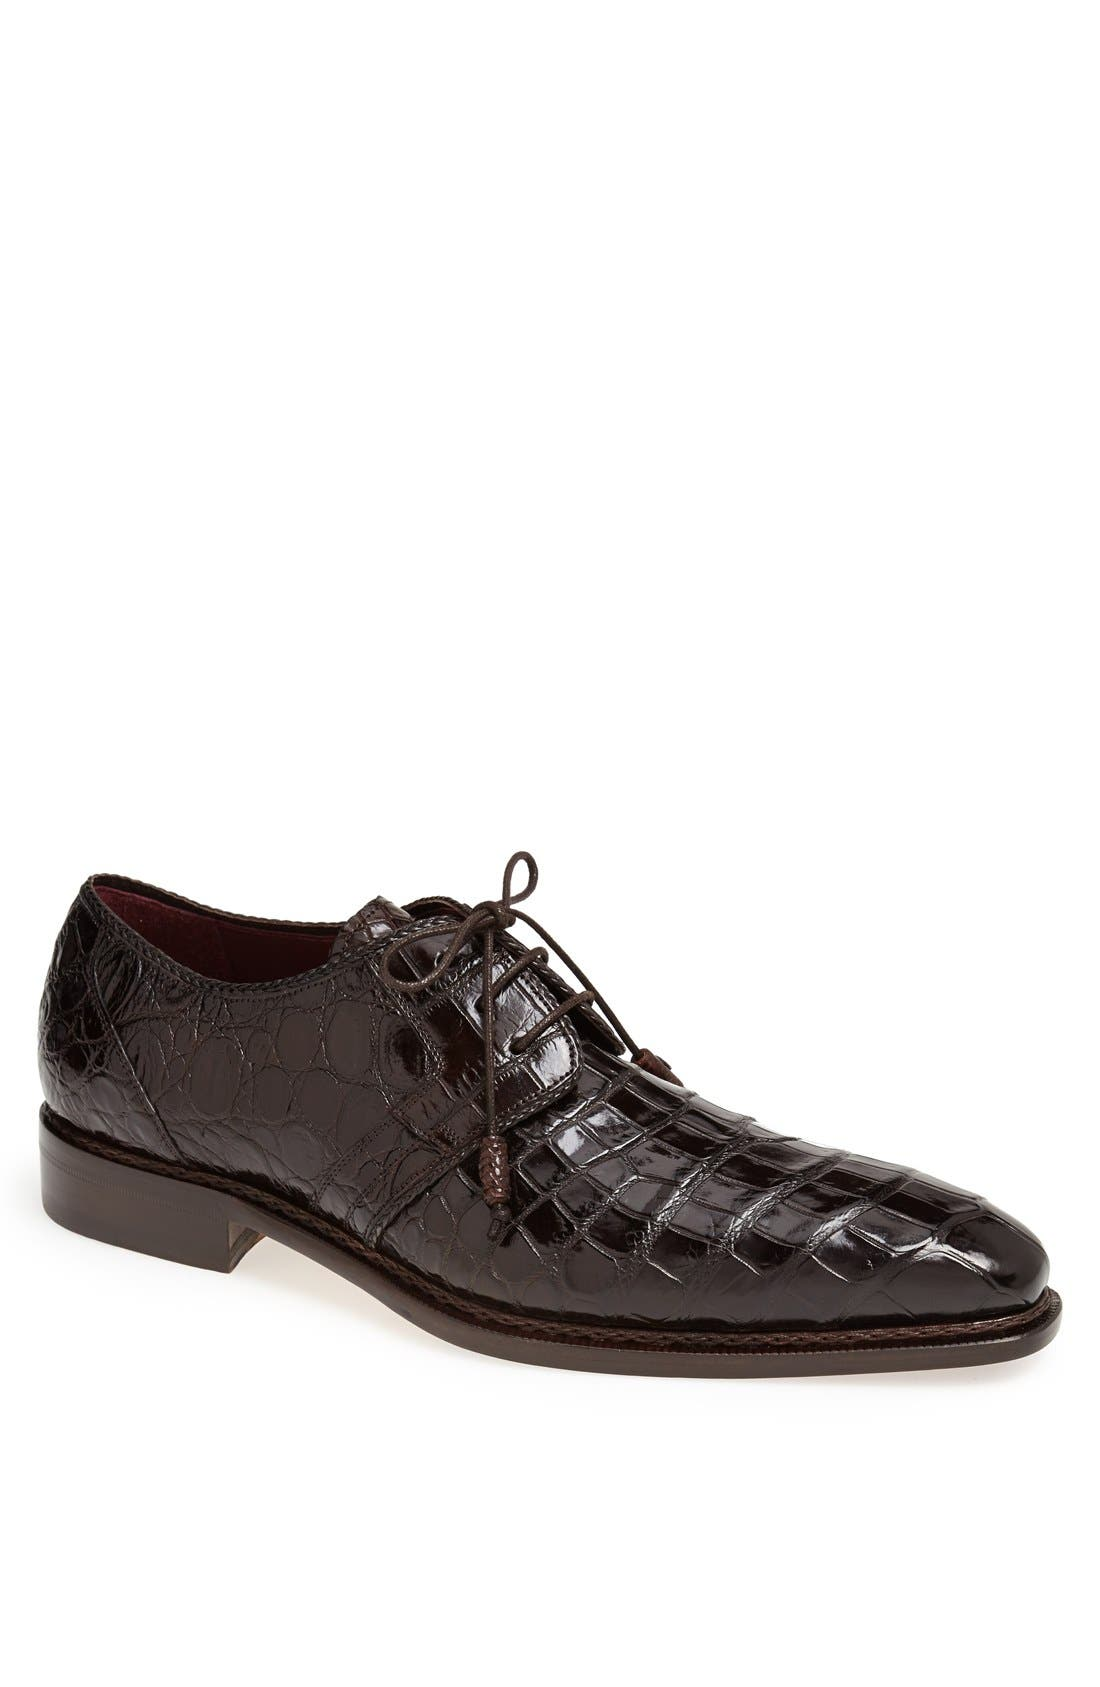 MEZLAN Marini Alligator Leather Derby